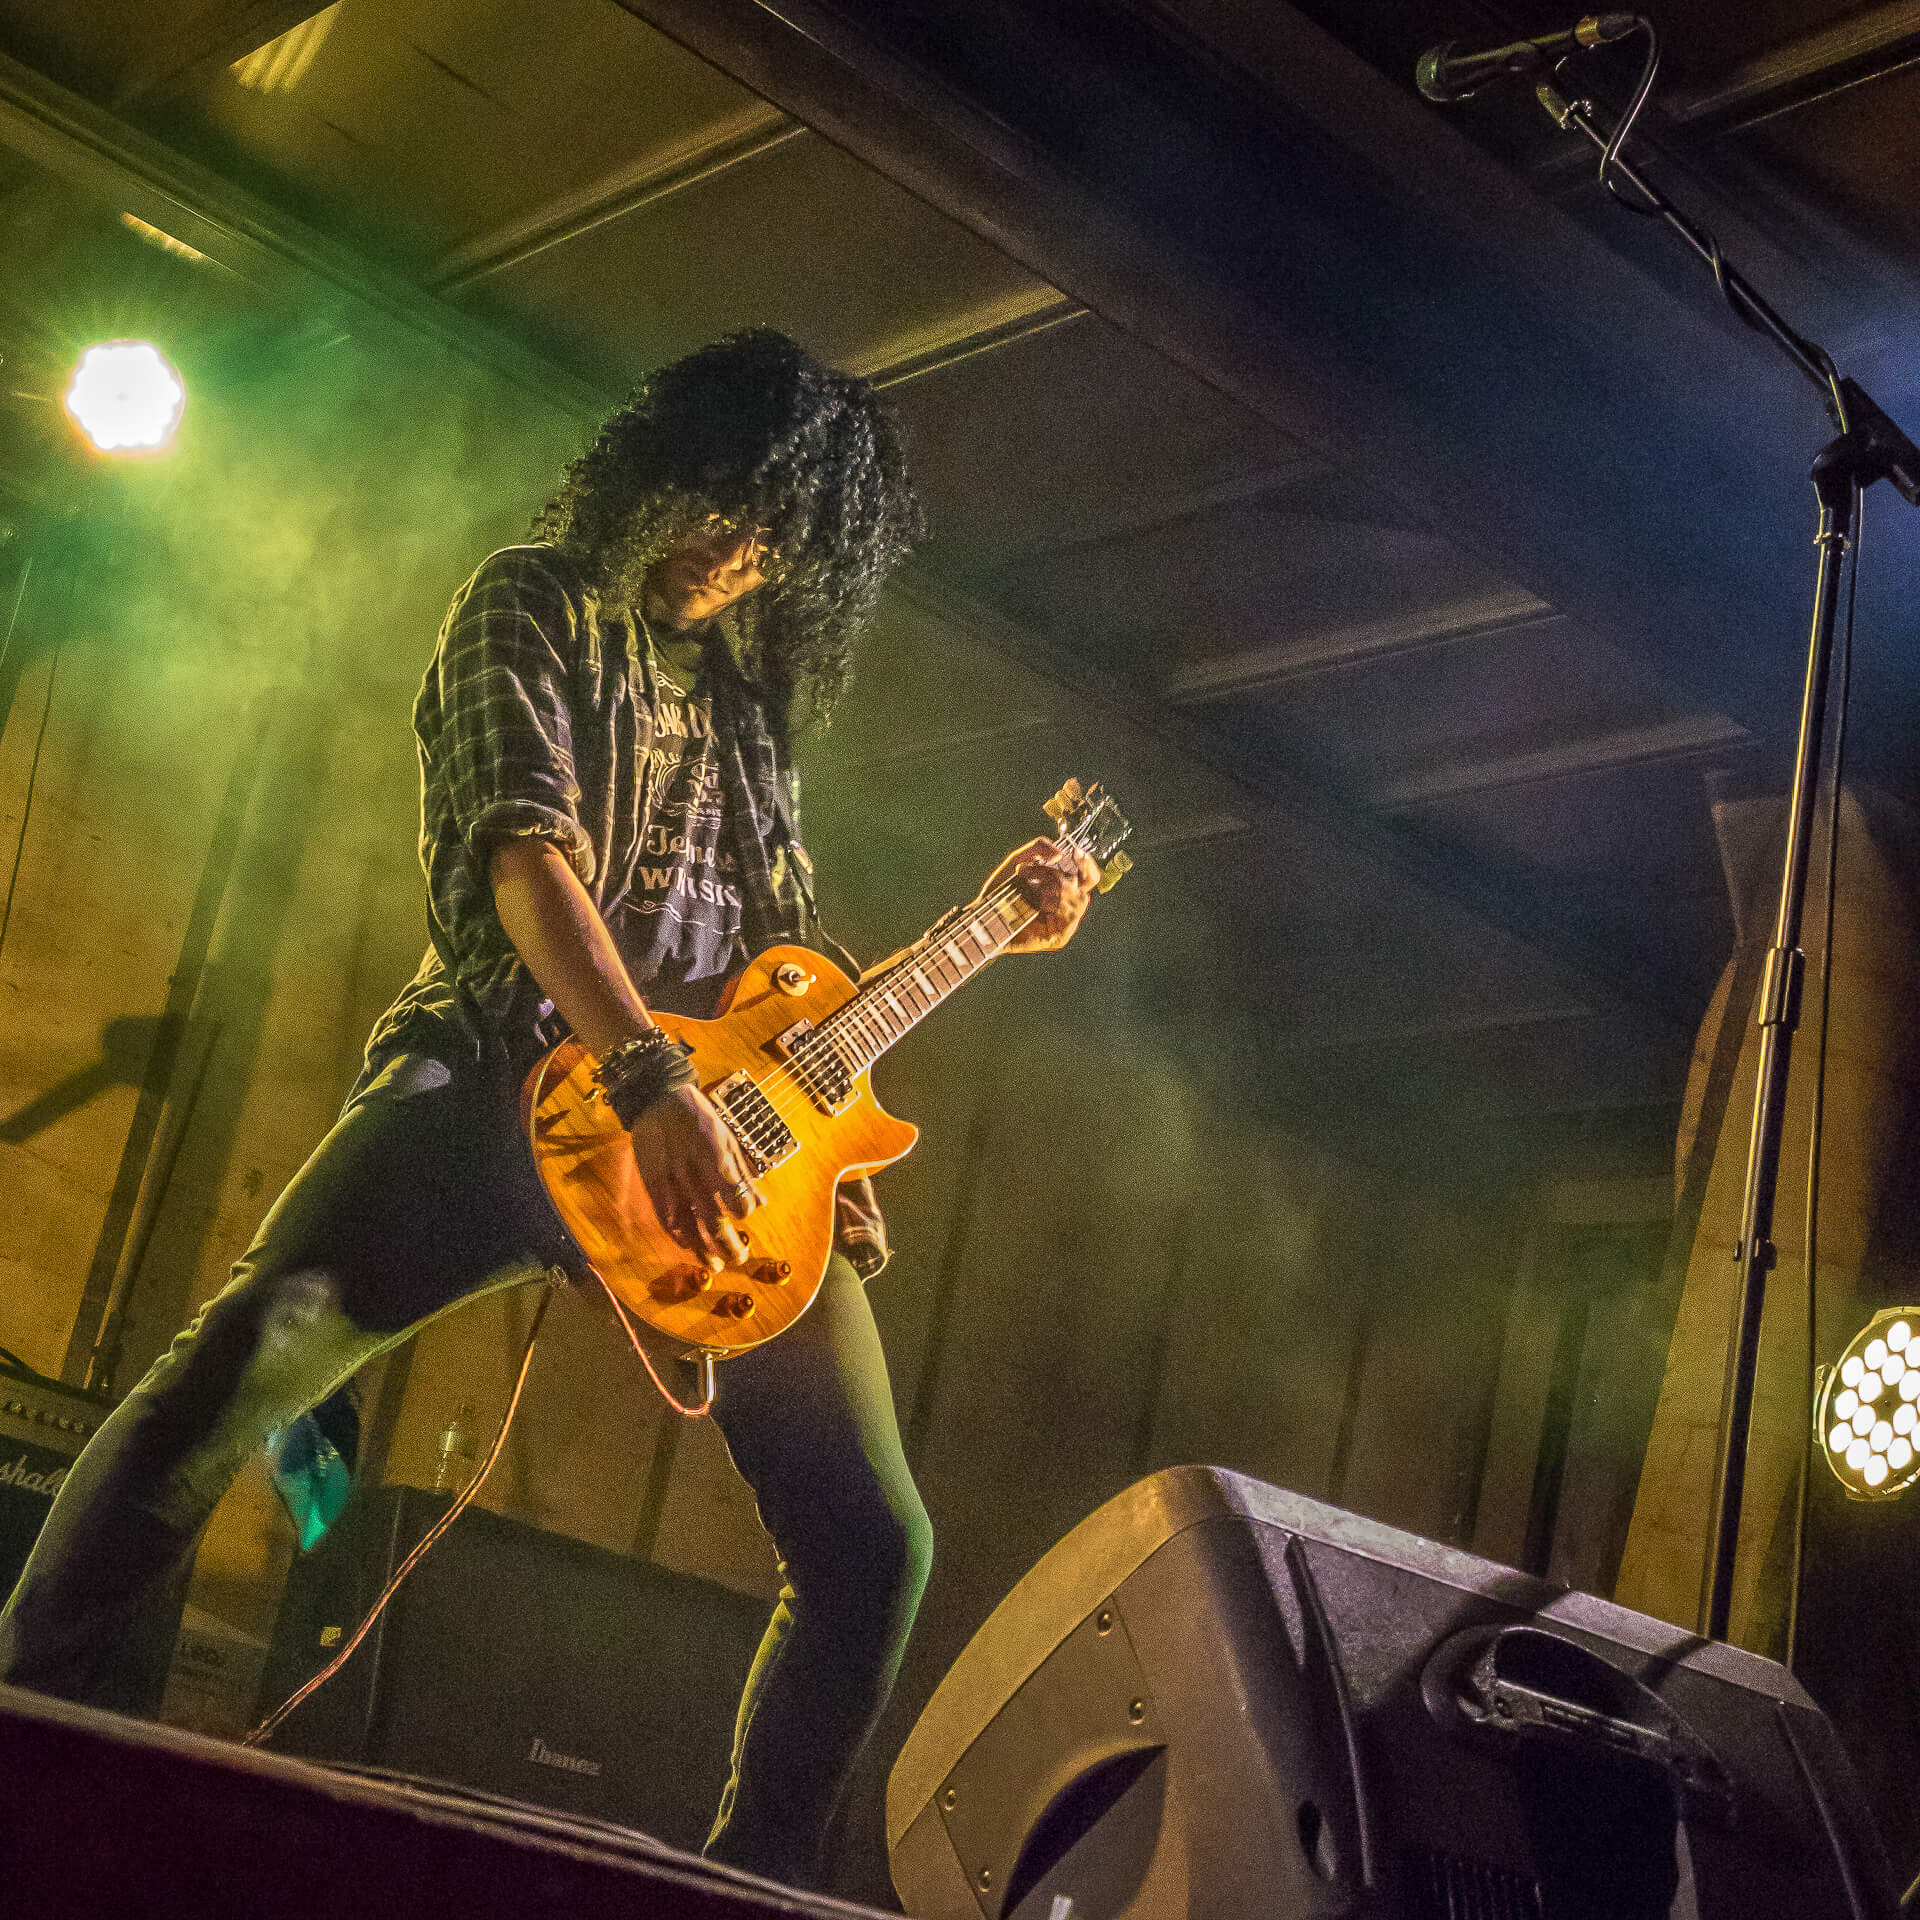 A colour photograph of the Slash lookalike from Guns 2 Roses stood in a classic Slash pose legs wide apart (and without top hat) playing guitar on stage at The Drunken Monkey Festival 2017.